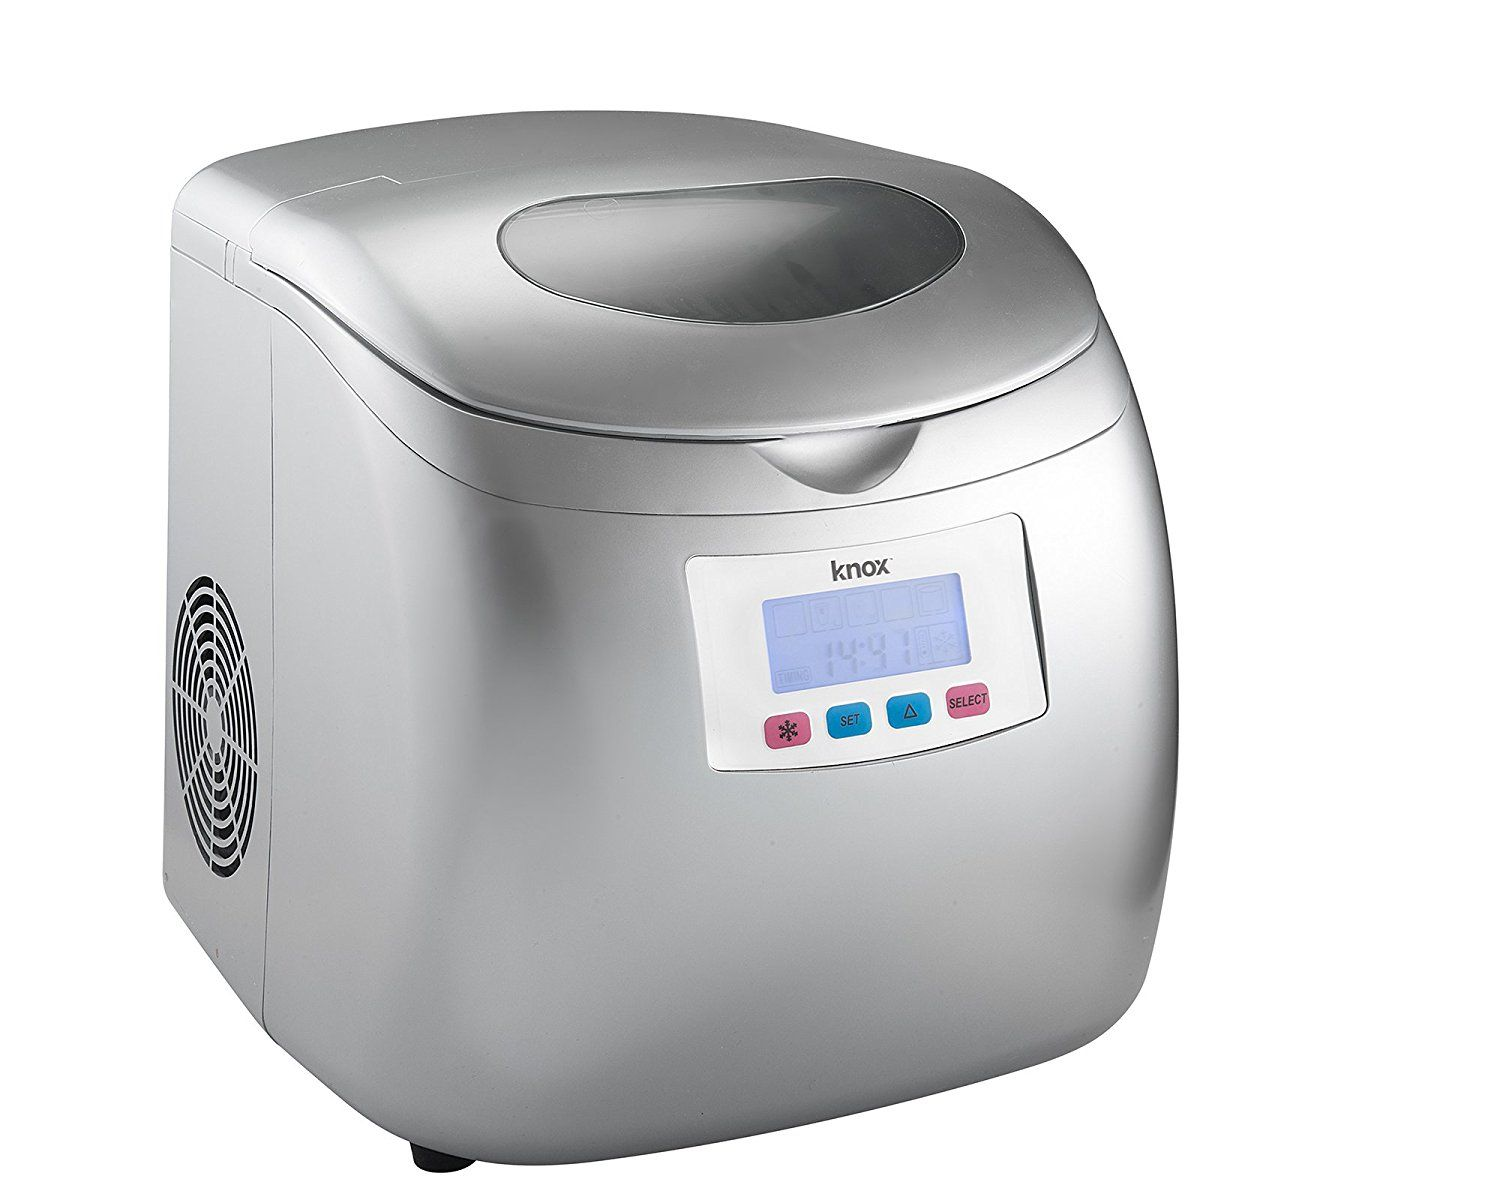 Knox Portable Compact Ice Maker W Lcd Display Silver 2 8 Liter